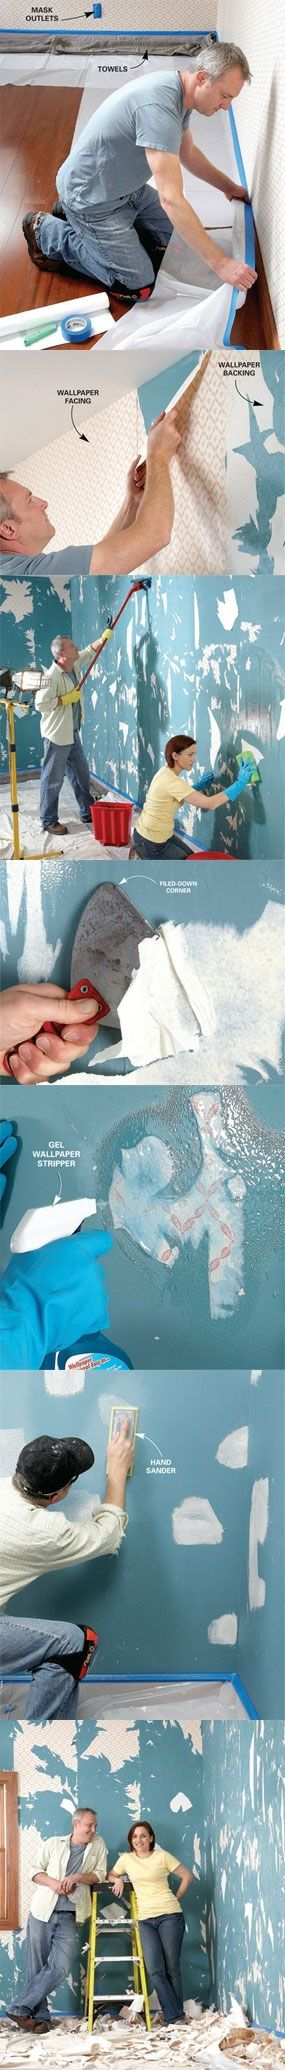 How To Remove Wallpaper Removable Wallpaper Diy House Projects Cleaning Painted Walls